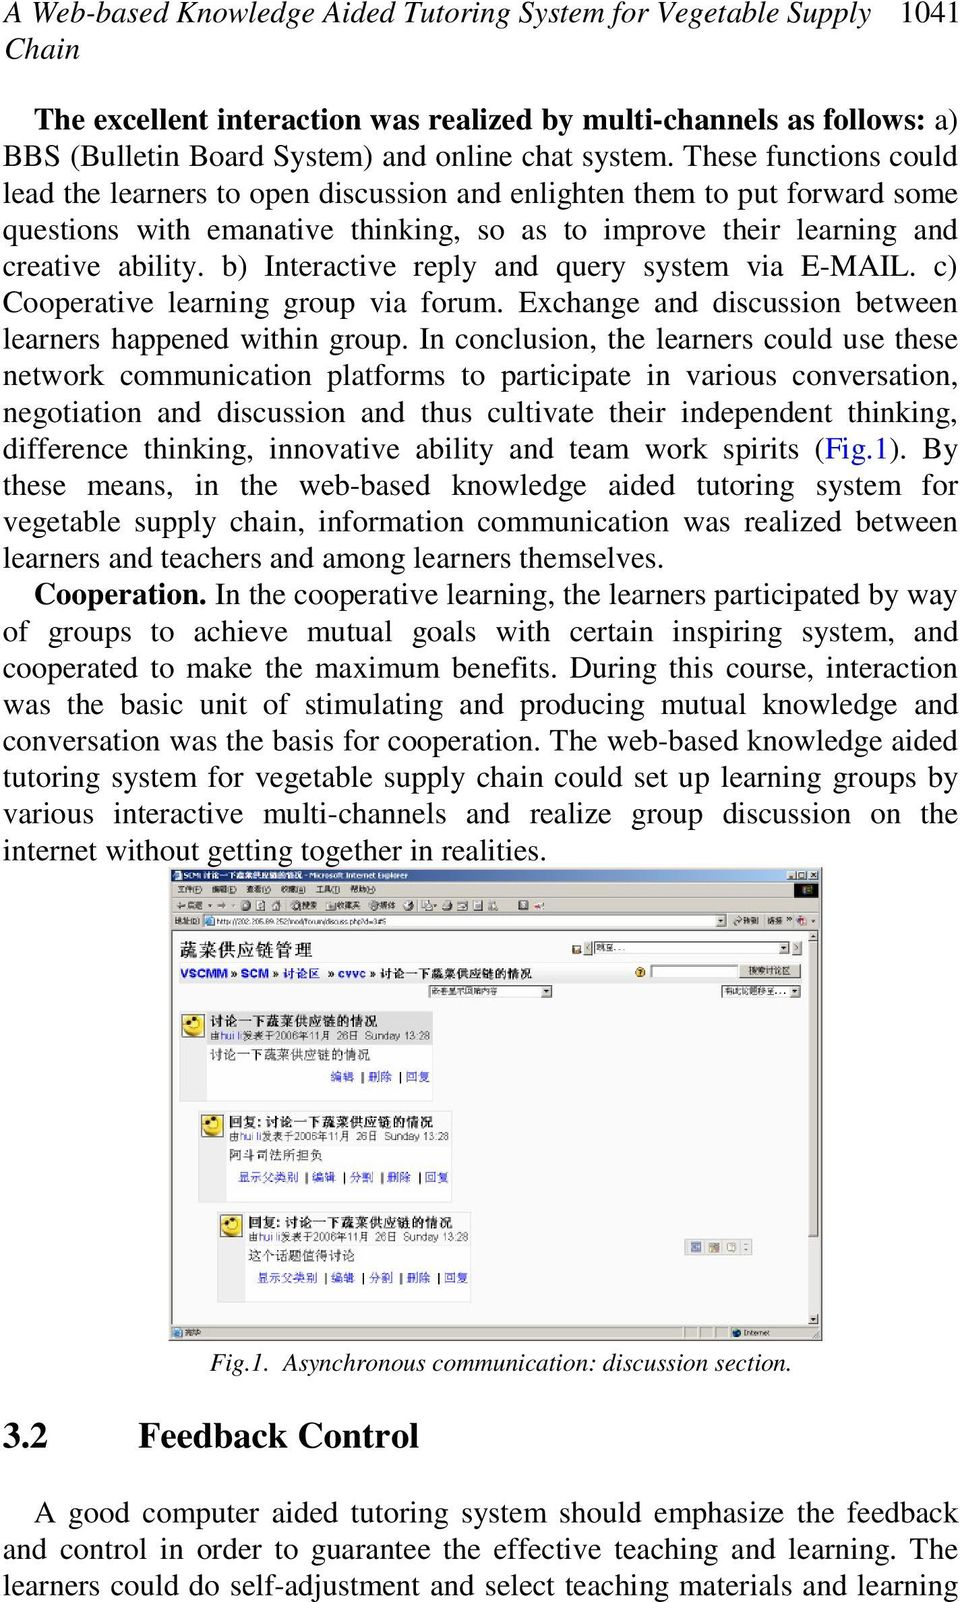 b) Interactive reply and query system via E-MAIL. c) Cooperative learning group via forum. Exchange and discussion between learners happened within group.